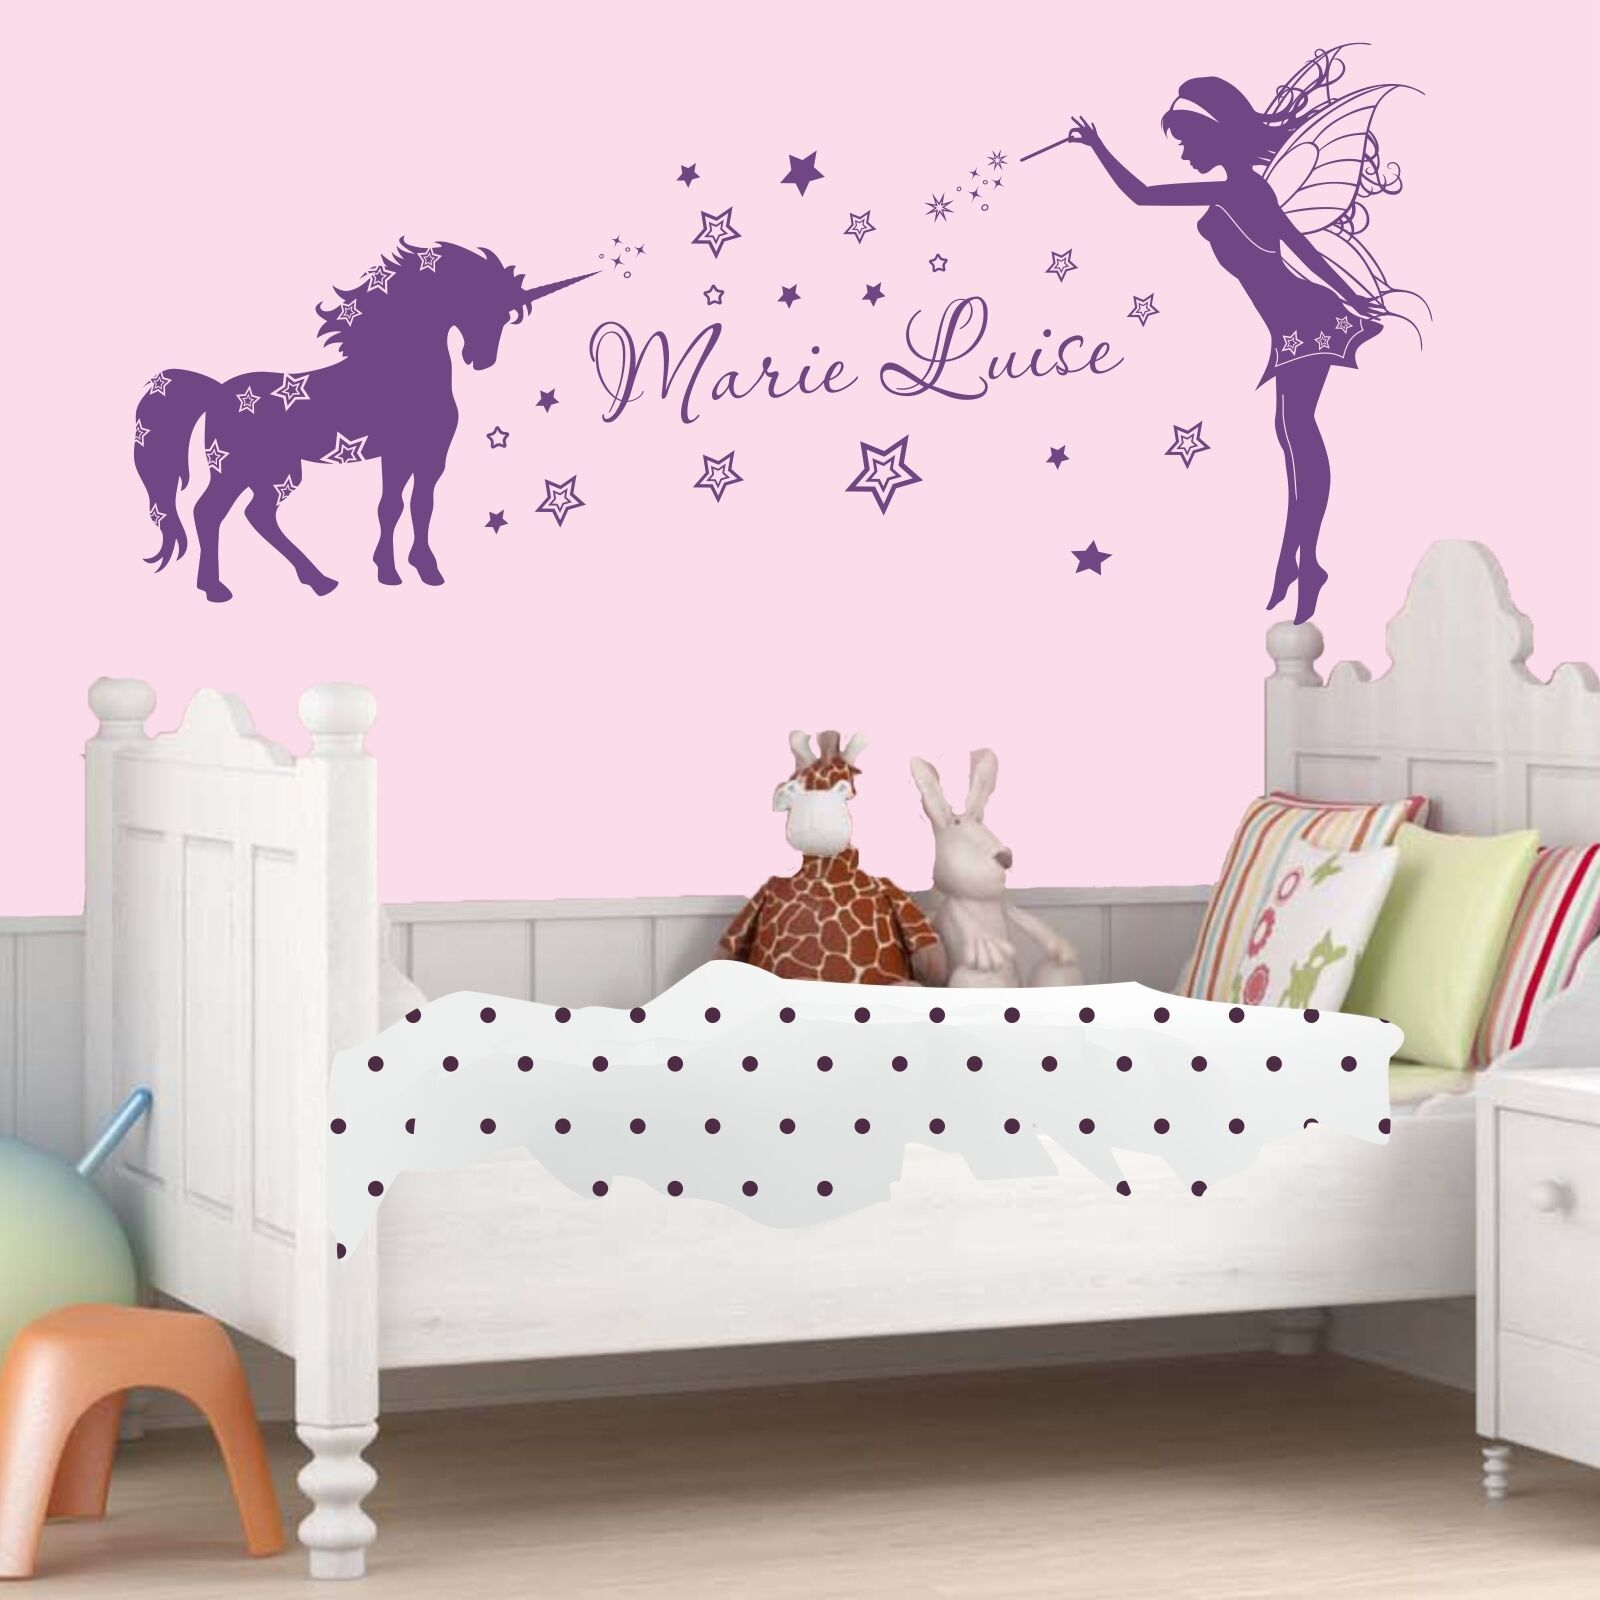 wandtattoo einhorn elfe mit namen sternchen sterne kinderzimmer wandaufkleber eur 19 90. Black Bedroom Furniture Sets. Home Design Ideas